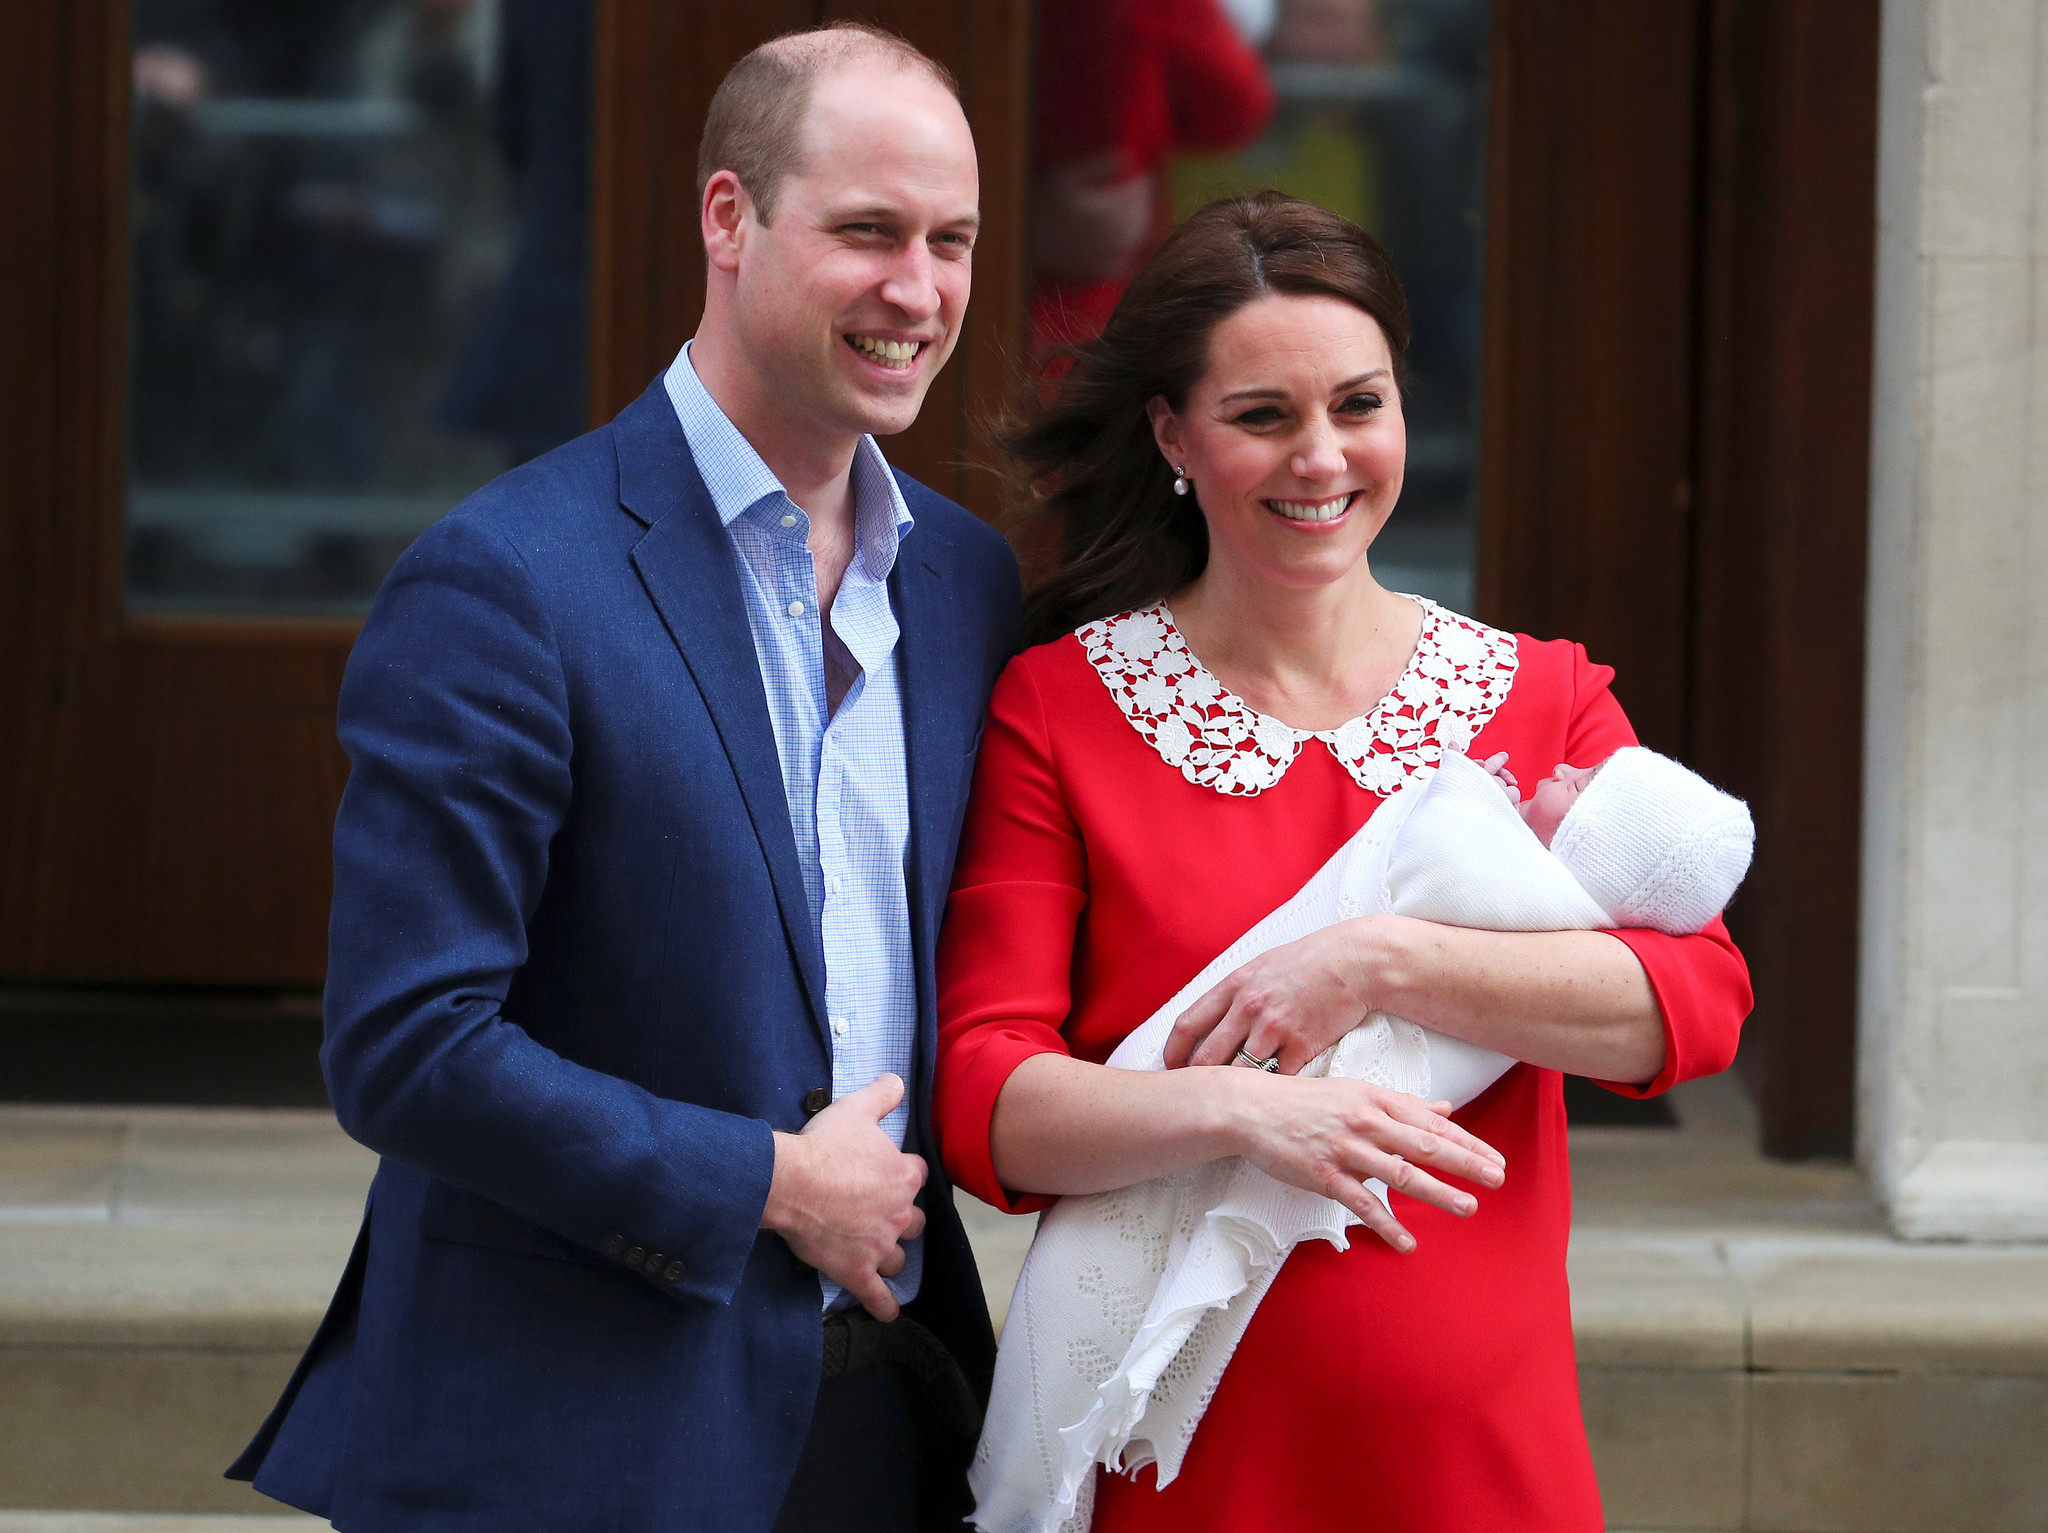 2018-04-23T165607Z_934139466_RC15712D2240_RTRMADP_3_BRITAIN-ROYALS-BABY.JPG